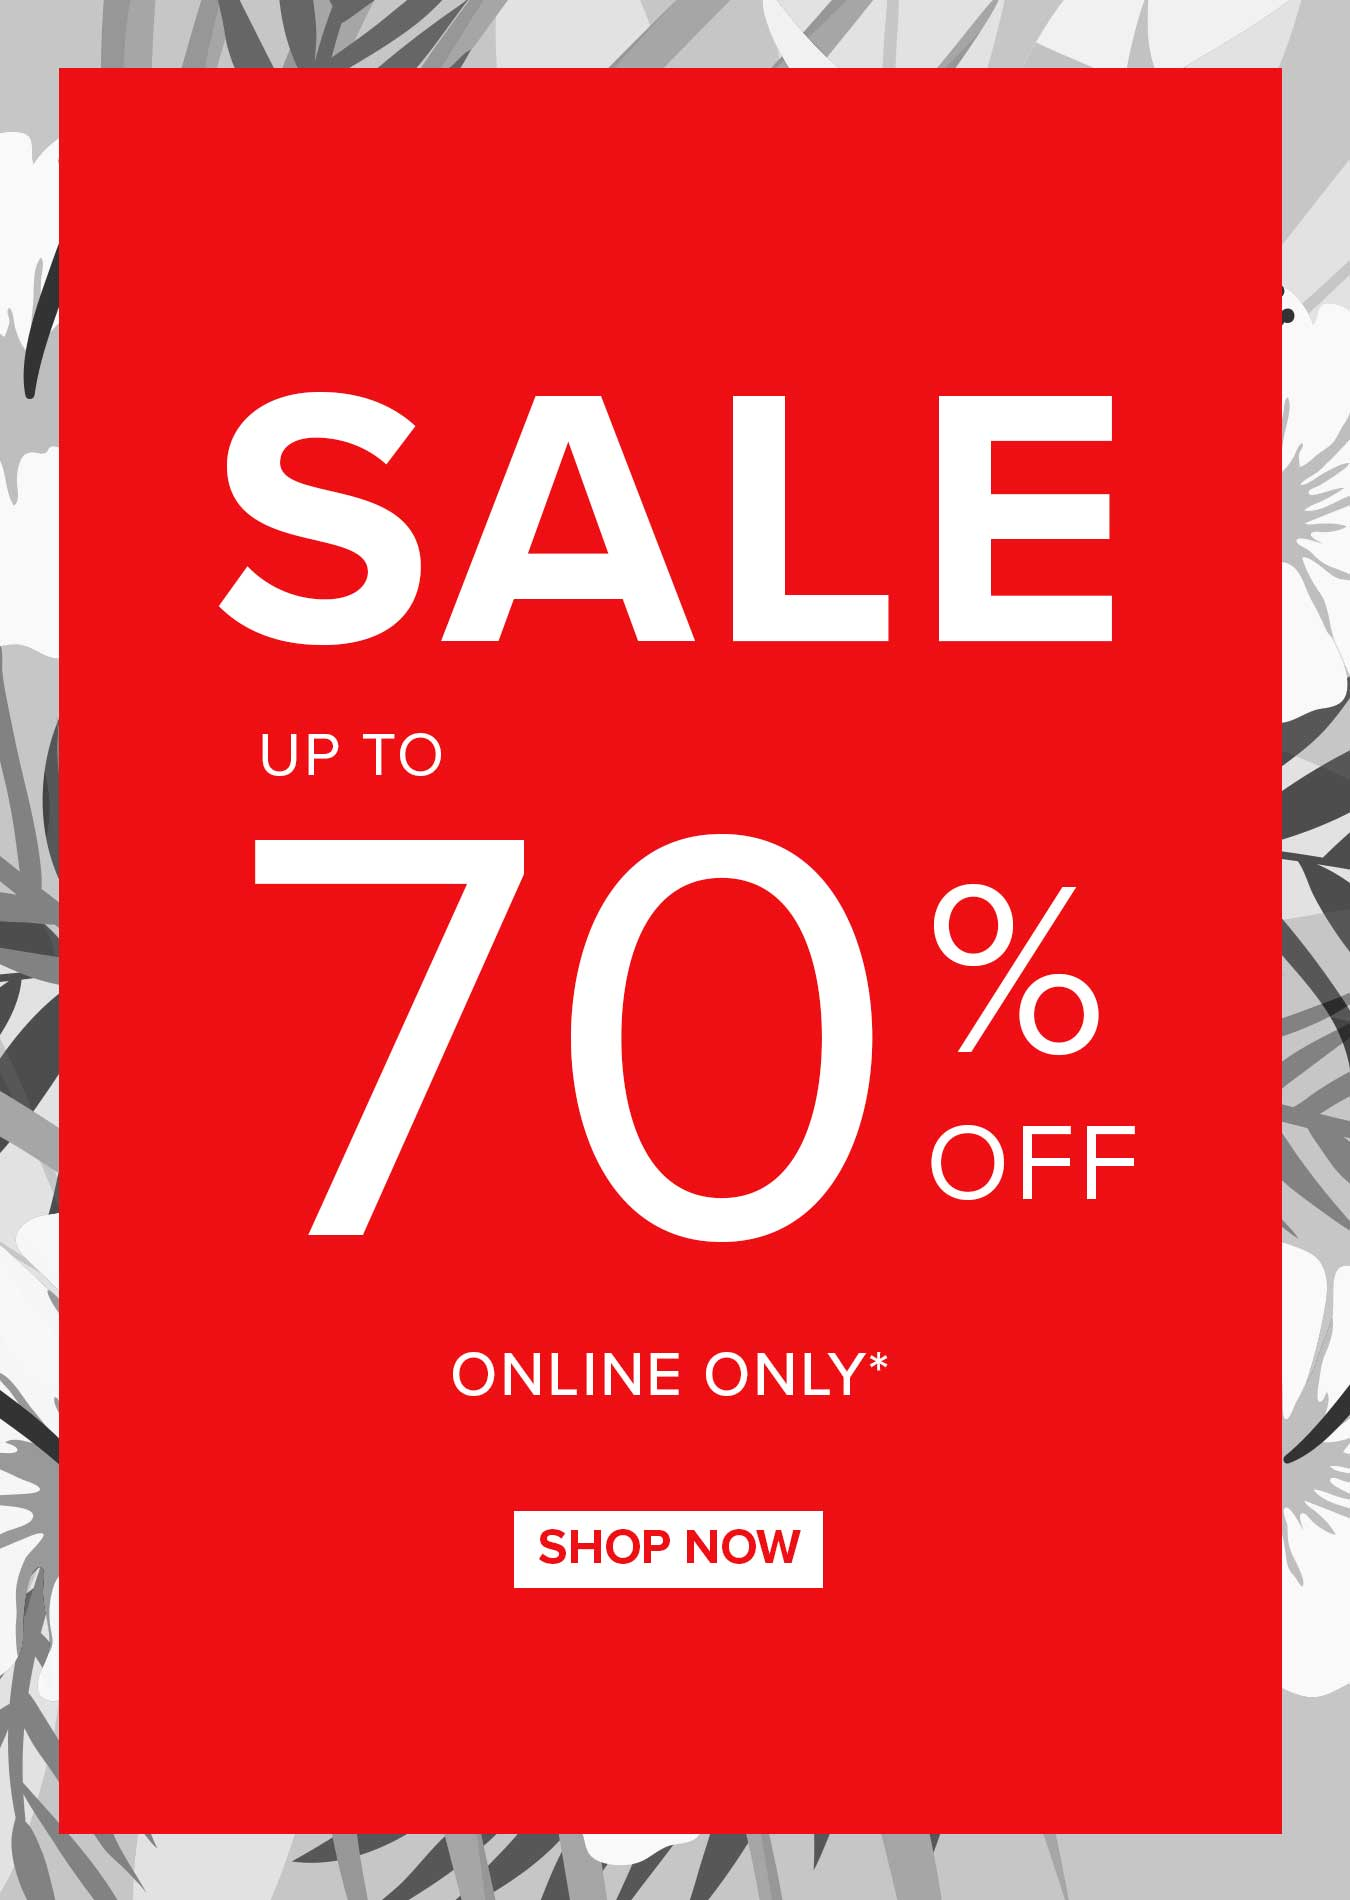 d885c1e2737af Jane Norman: Sale up to 70% off clothing, swimwear, nightwear, shoes and  accessories